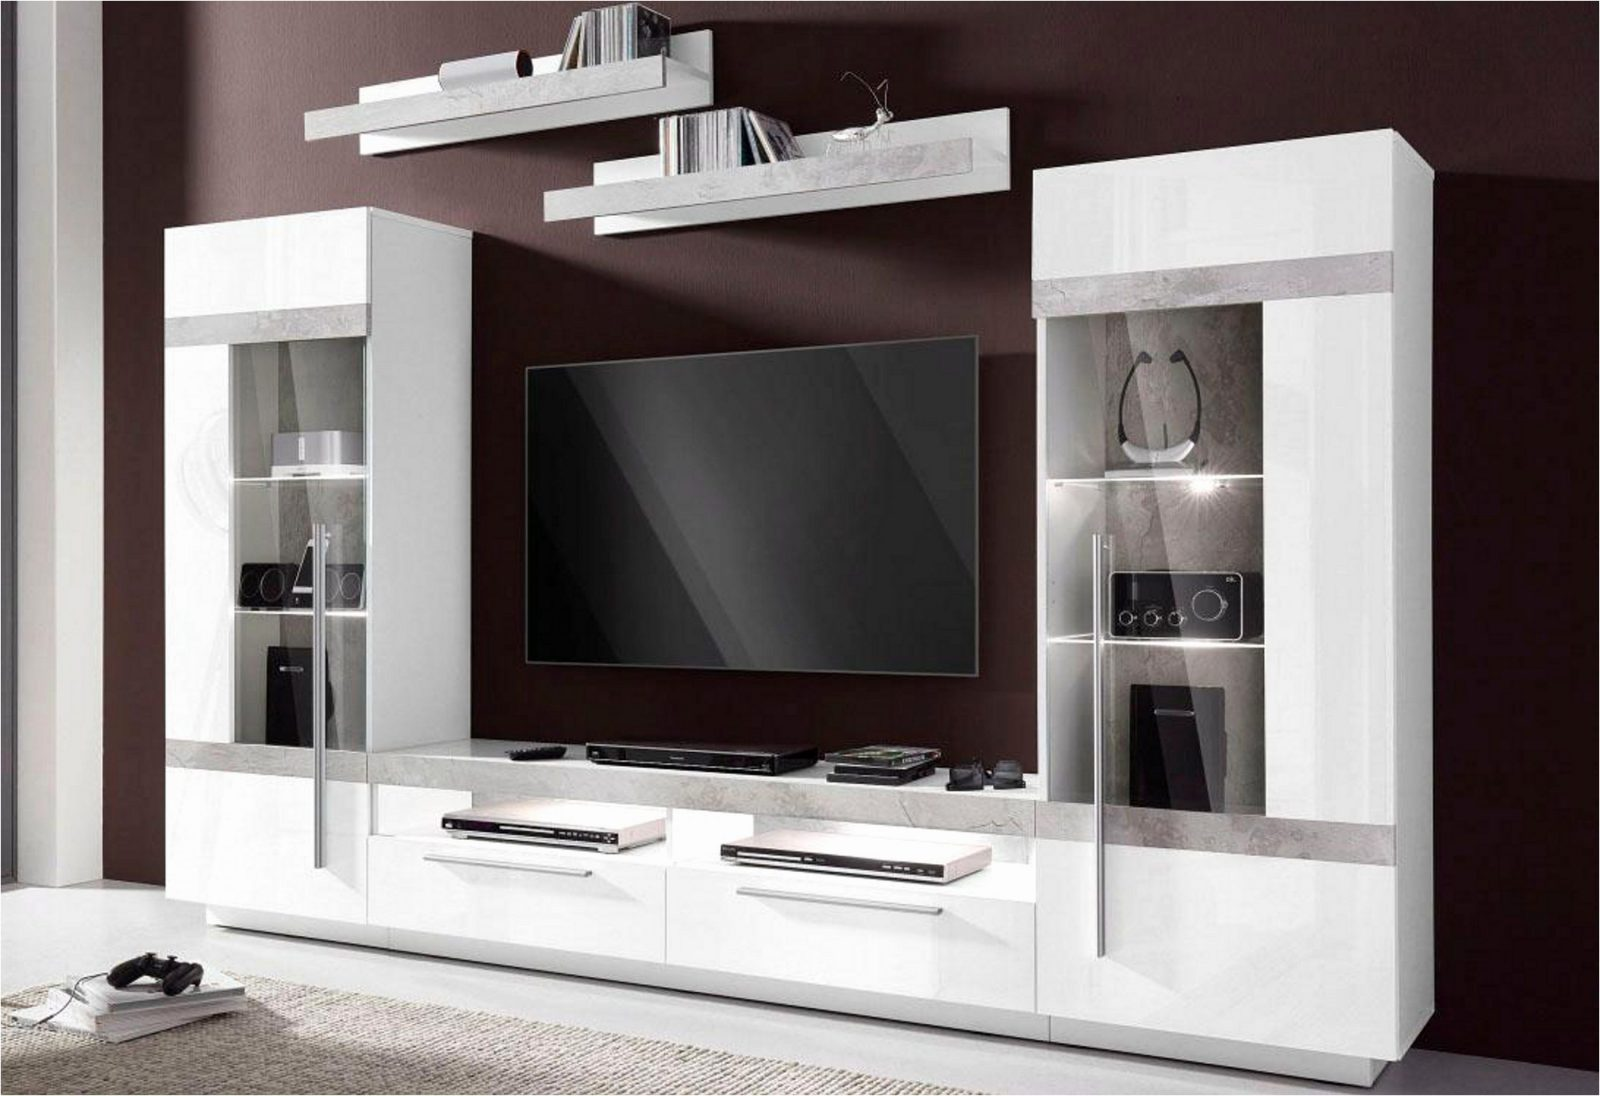 wundersch ne autokauf trotz negativer schufa ratenkauf. Black Bedroom Furniture Sets. Home Design Ideas